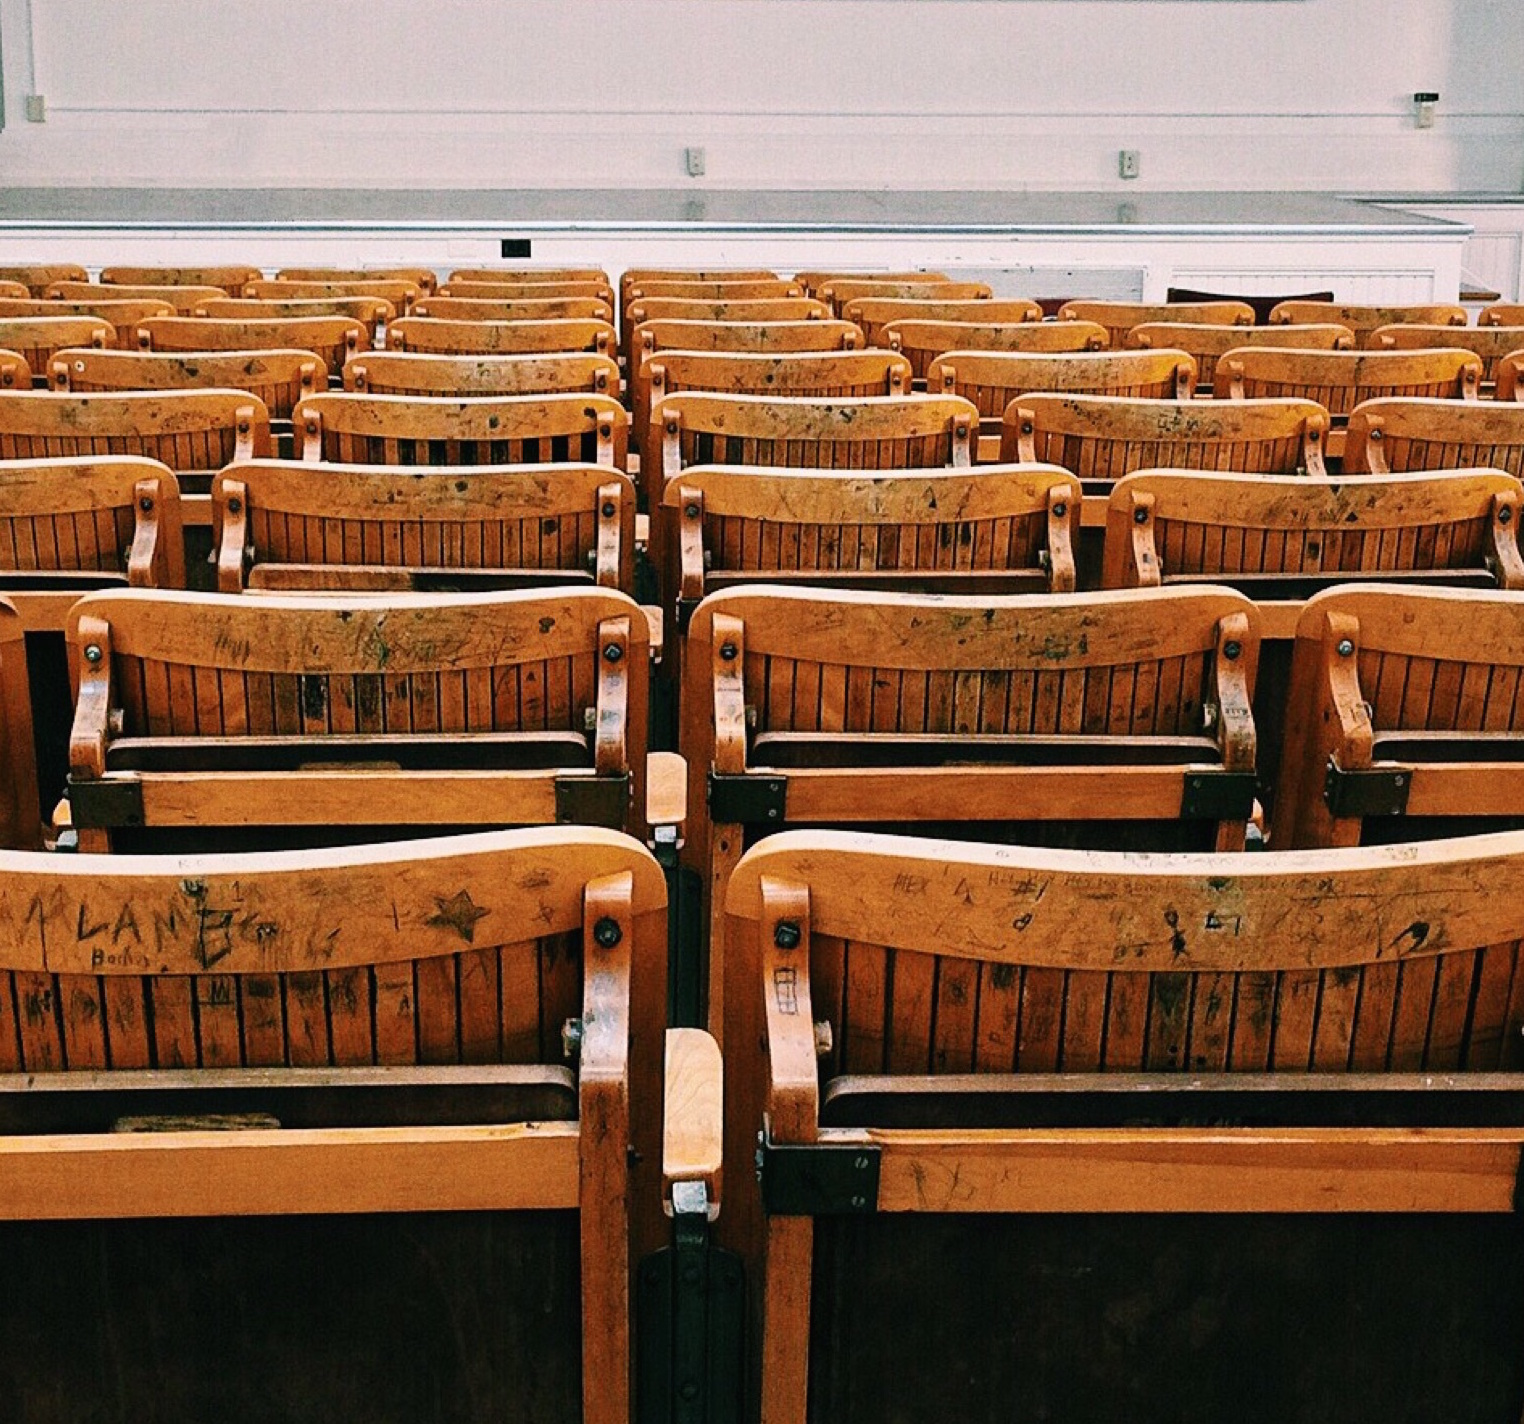 https://www.pexels.com/photo/auditorium-benches-chairs-class-207691/